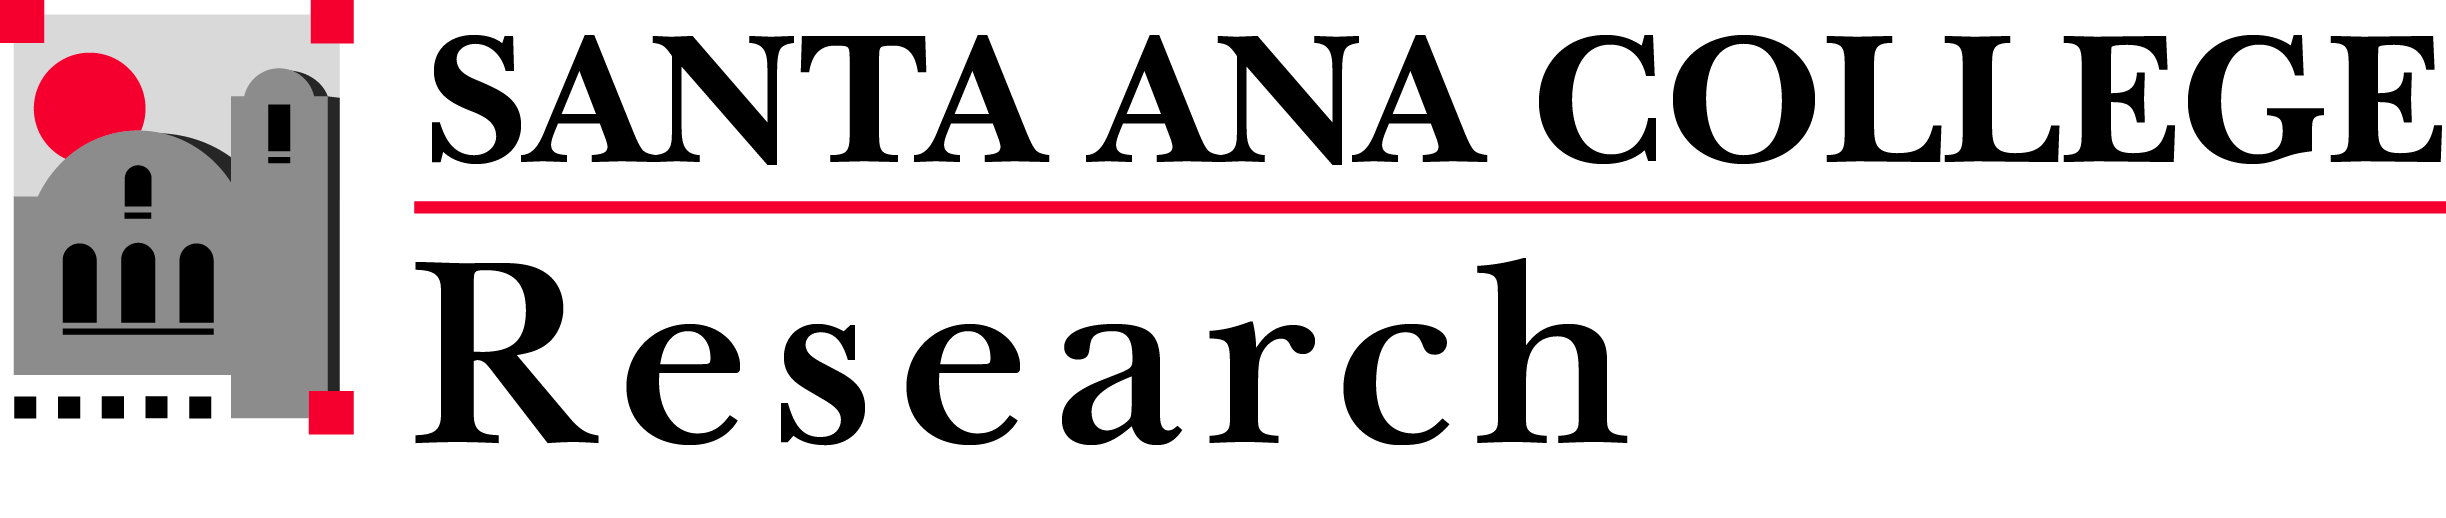 Santa Ana College Research logo